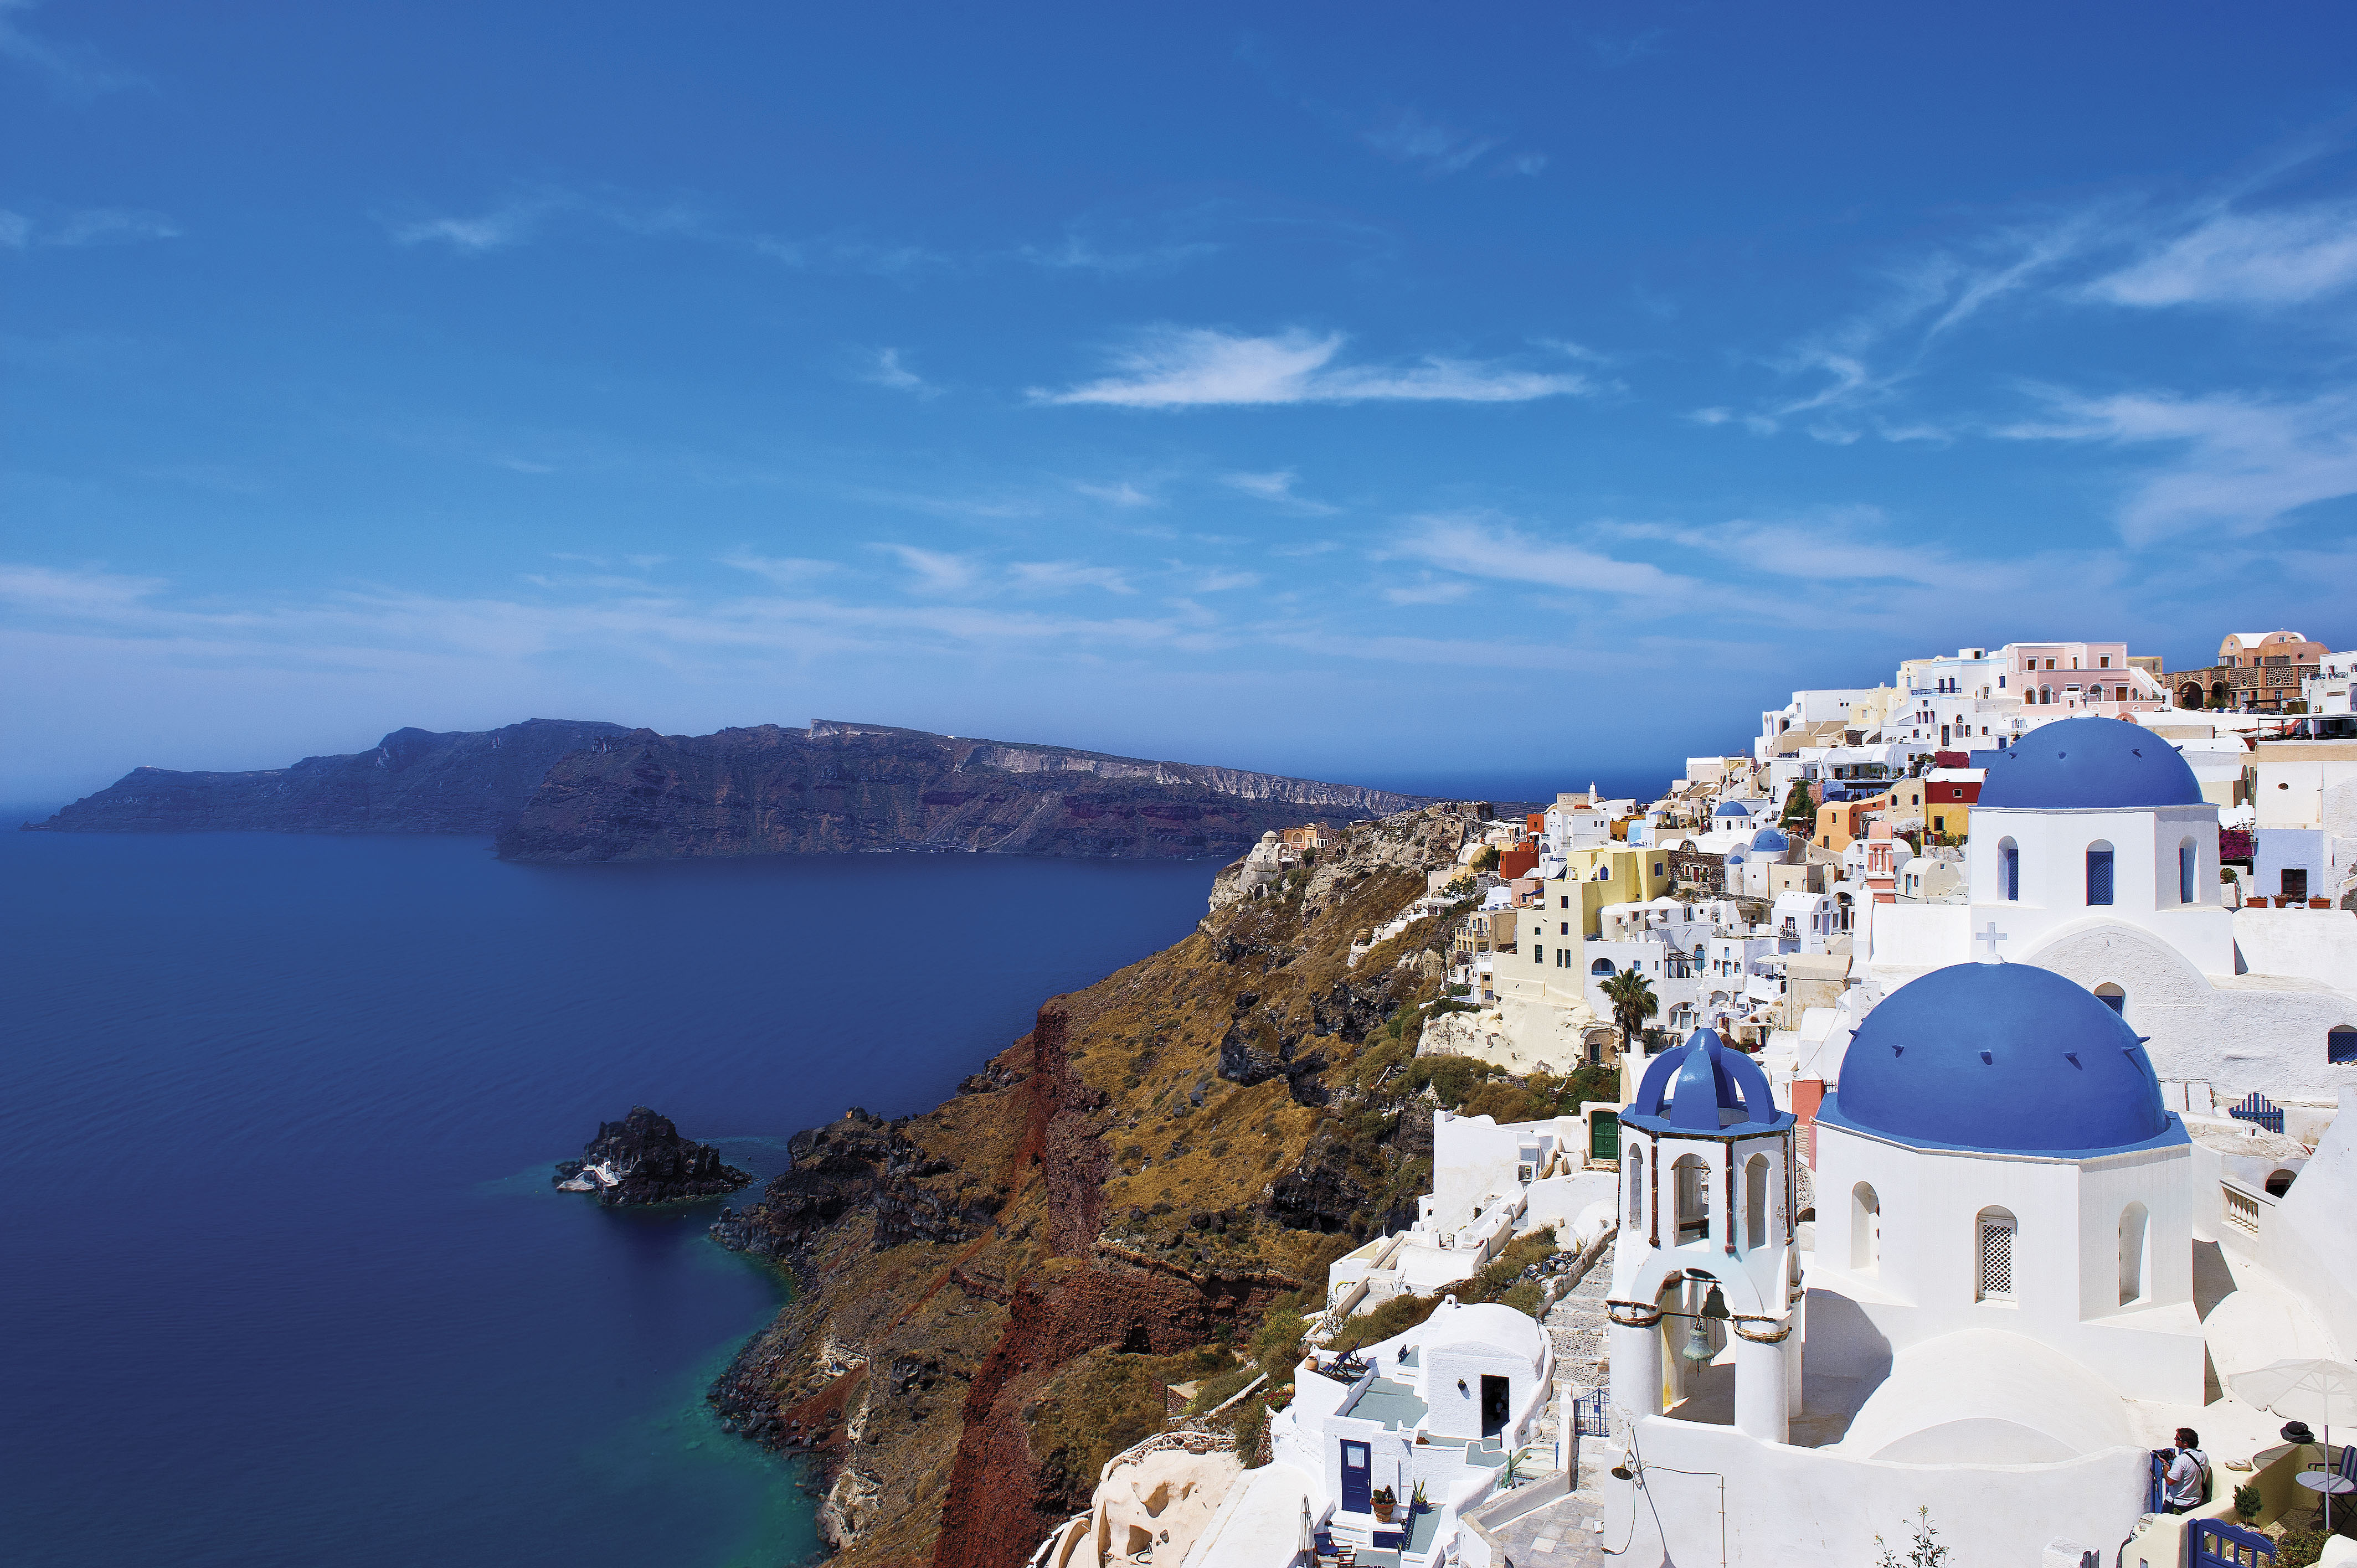 Disney Cruise Line announces 2021 Itineraries Along With Return to Greece and Offers Of An Exciting Array of Itineraries for Families in Summer 2021